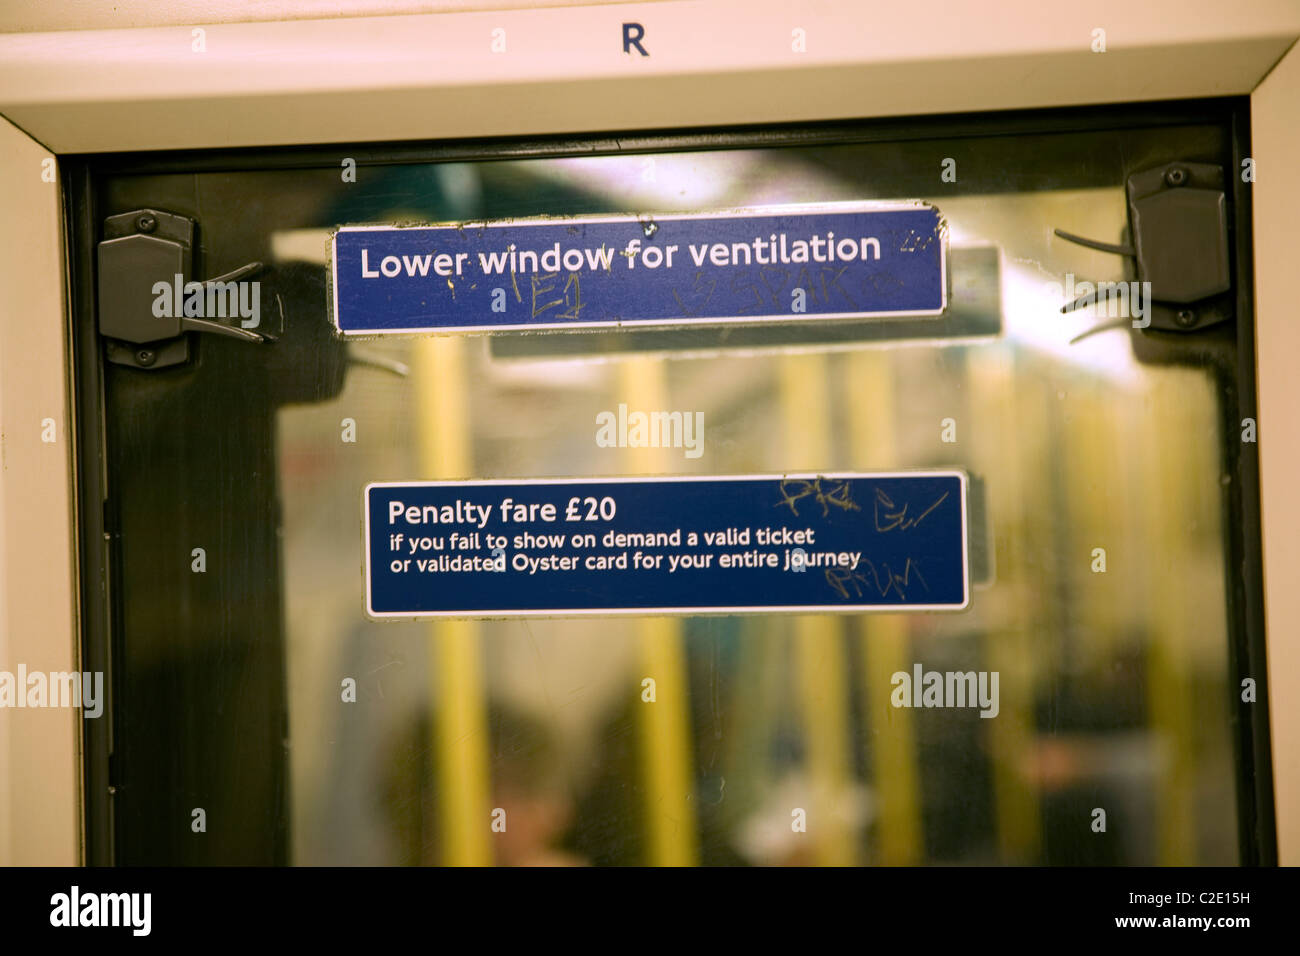 Lower window for ventilation penalty fare £20 - Stock Image